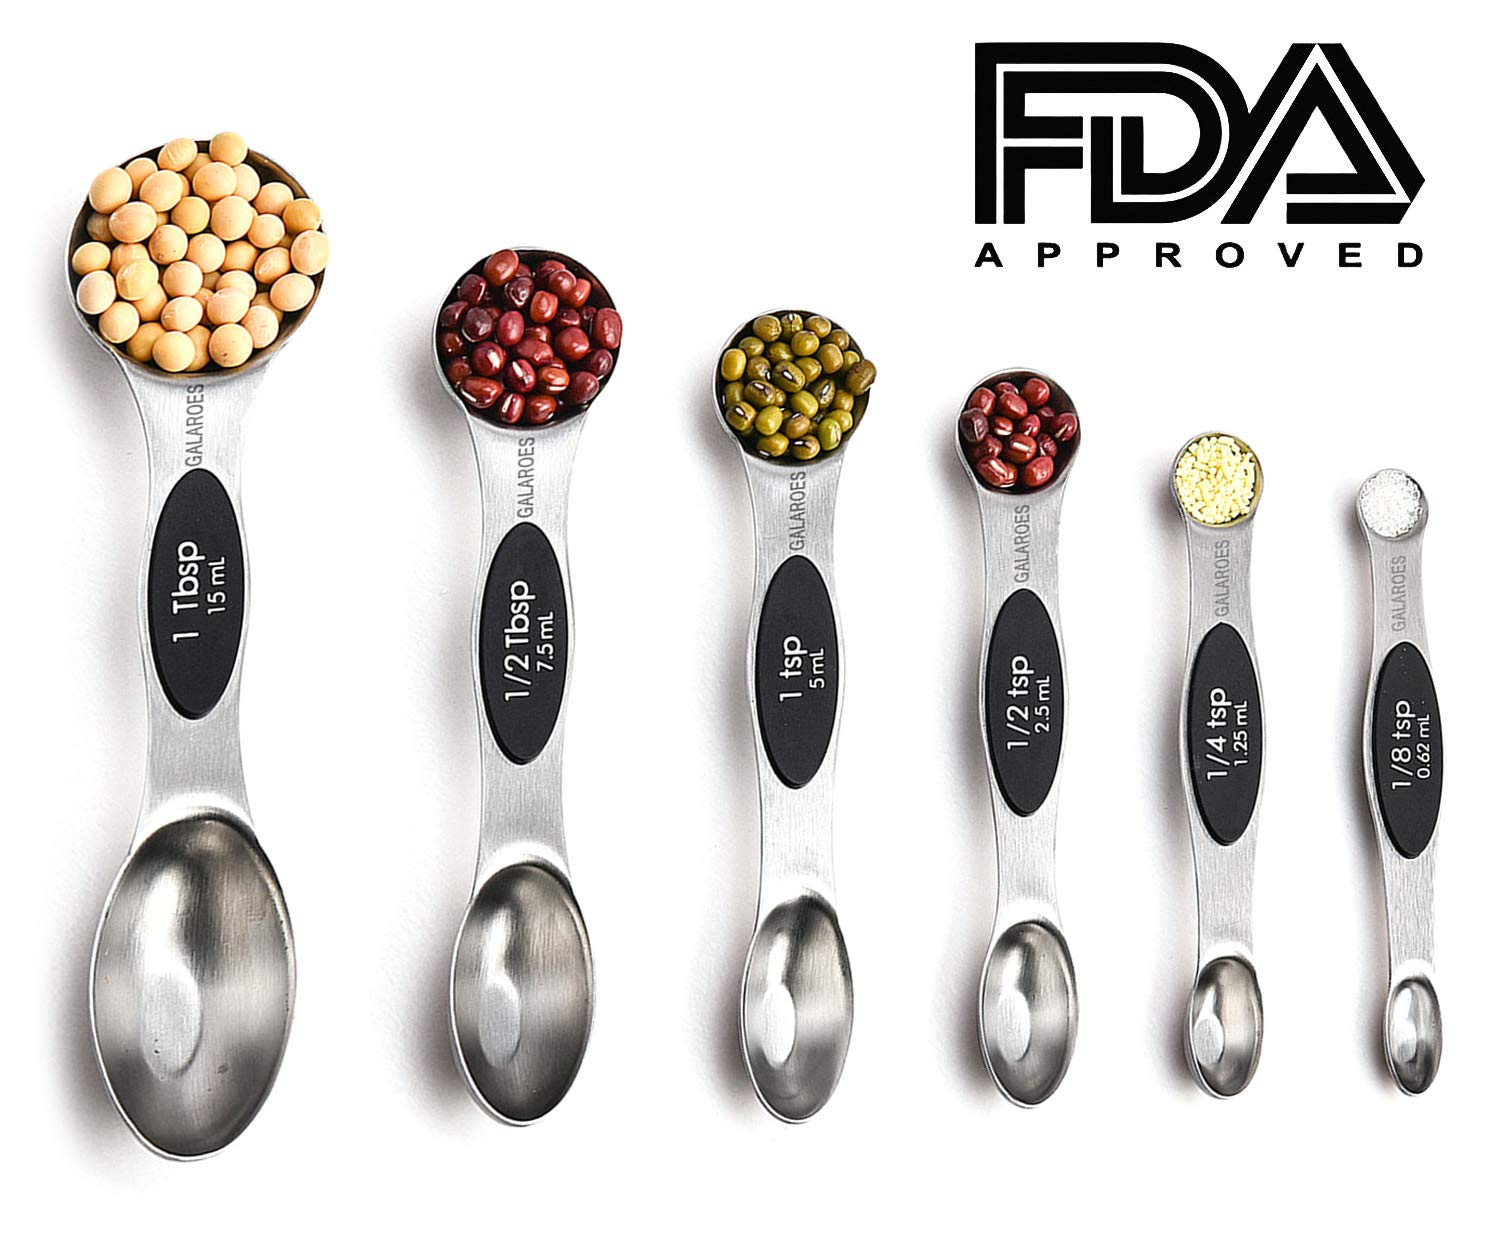 Measuring Cups and Measuring Spoons Set of 11, 6 Stackable Magnetic Measuring Spoons & 5 Nesting Stainless Steel Measuring Cups, Measuring Dry and Liquid Ingredients.